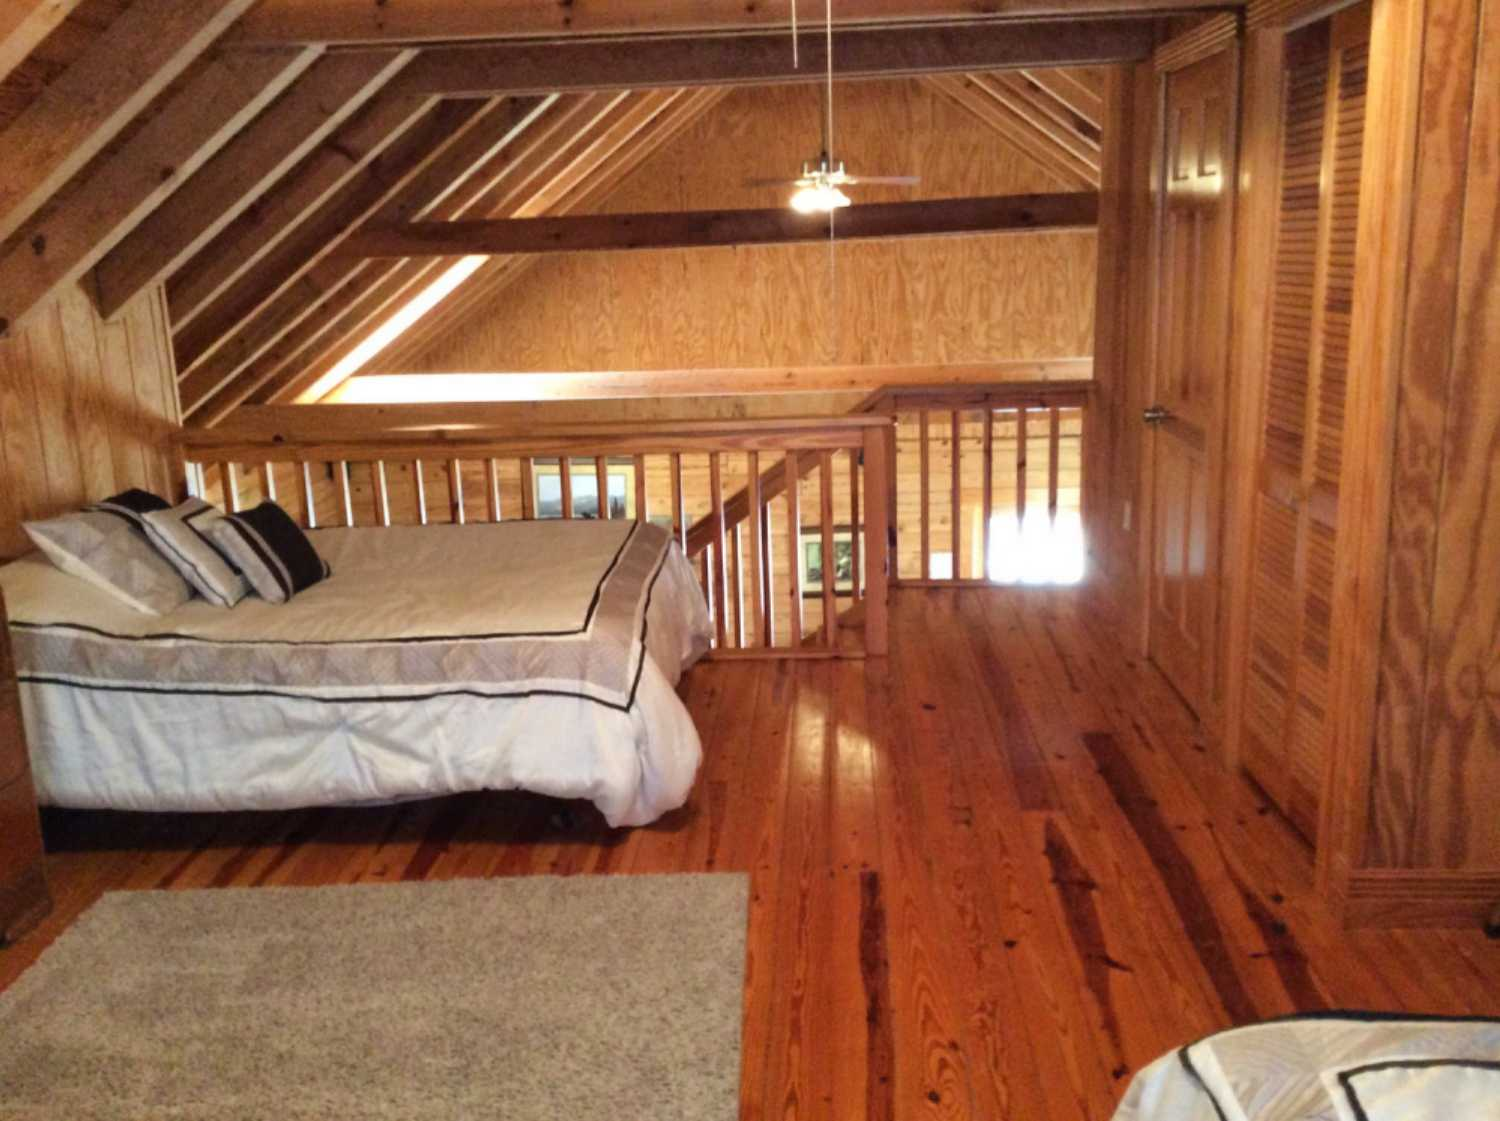 Loft area with plenty of space for extra beds or entertainment area overlooking living room